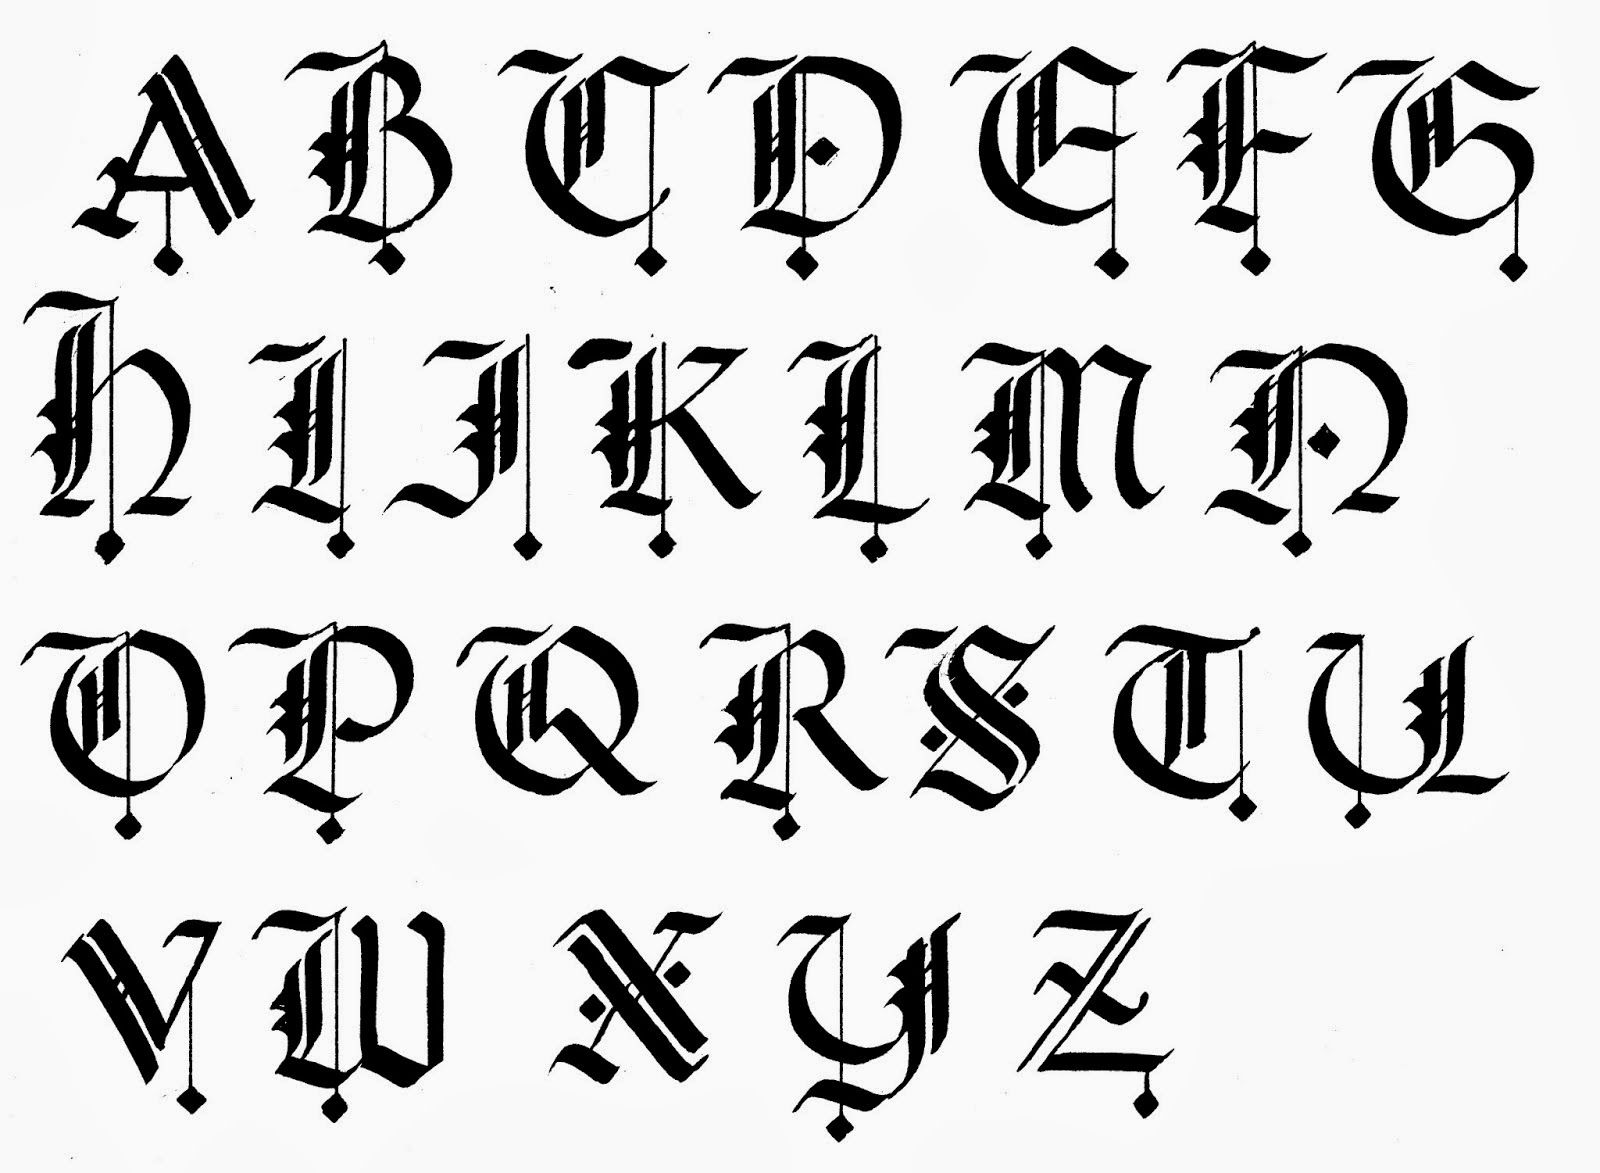 fountain pen calligraphy typeface - Google Search | Fonts